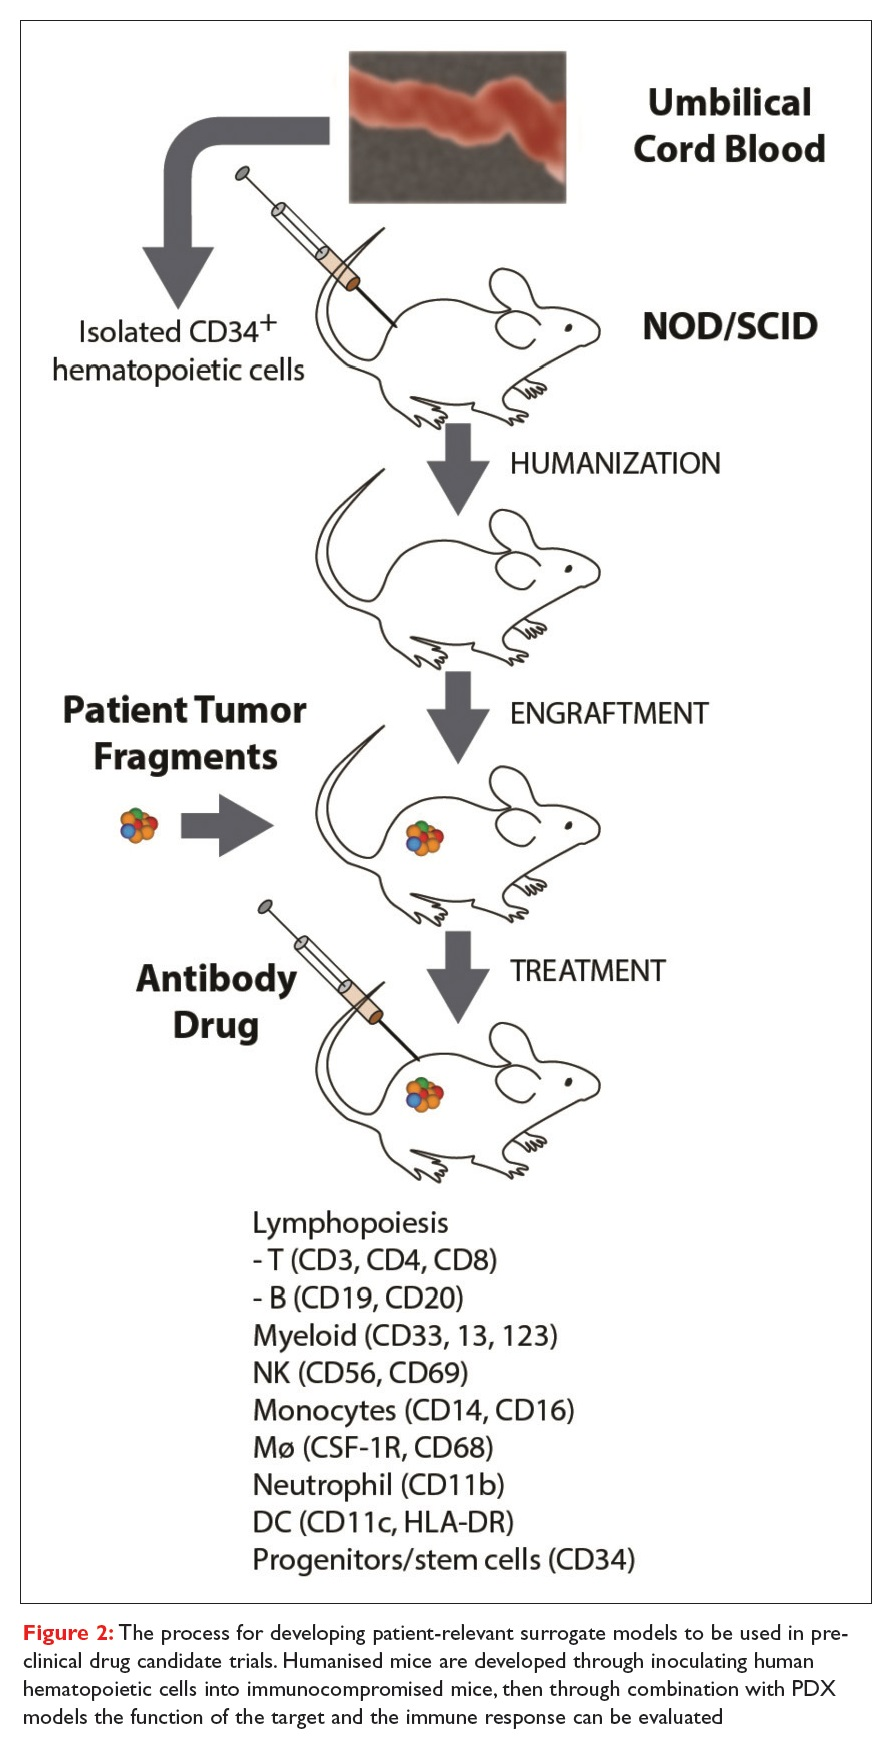 Figure 2 The process for developing patient-relevant surrogate models to be used in pre-clinical drug candidate trials